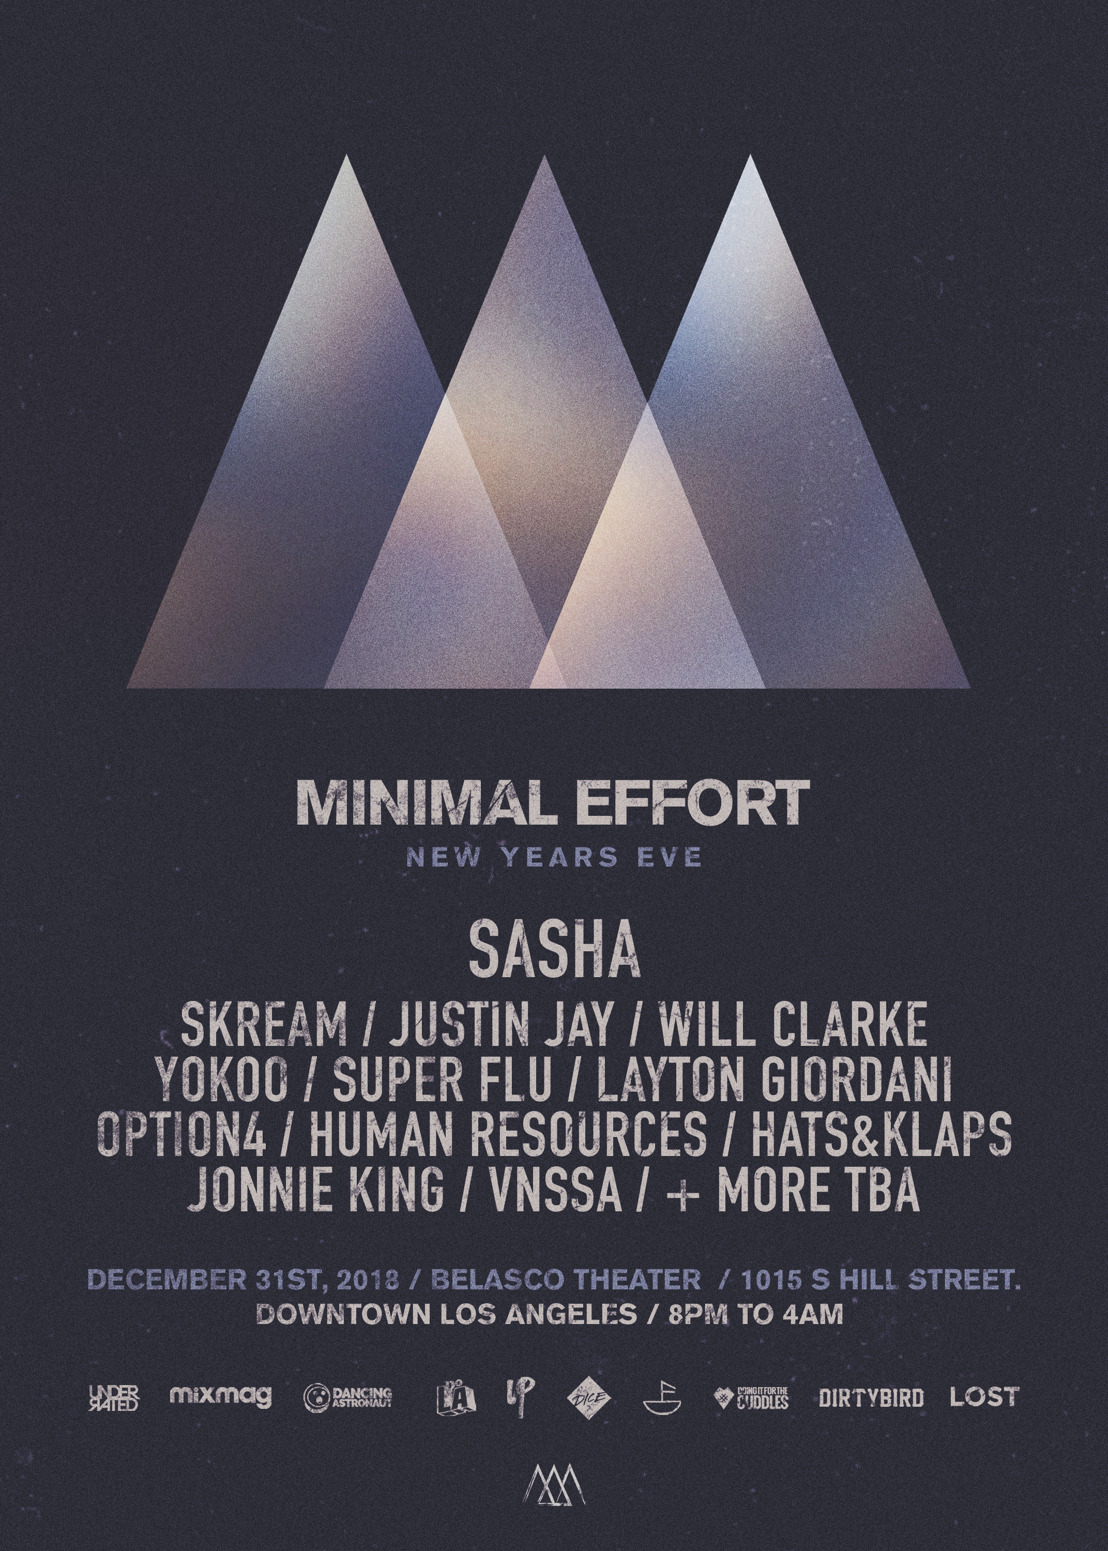 Minimal Effort Announces Lineup for New Year's Eve Event at Los Angeles' Belasco Theater